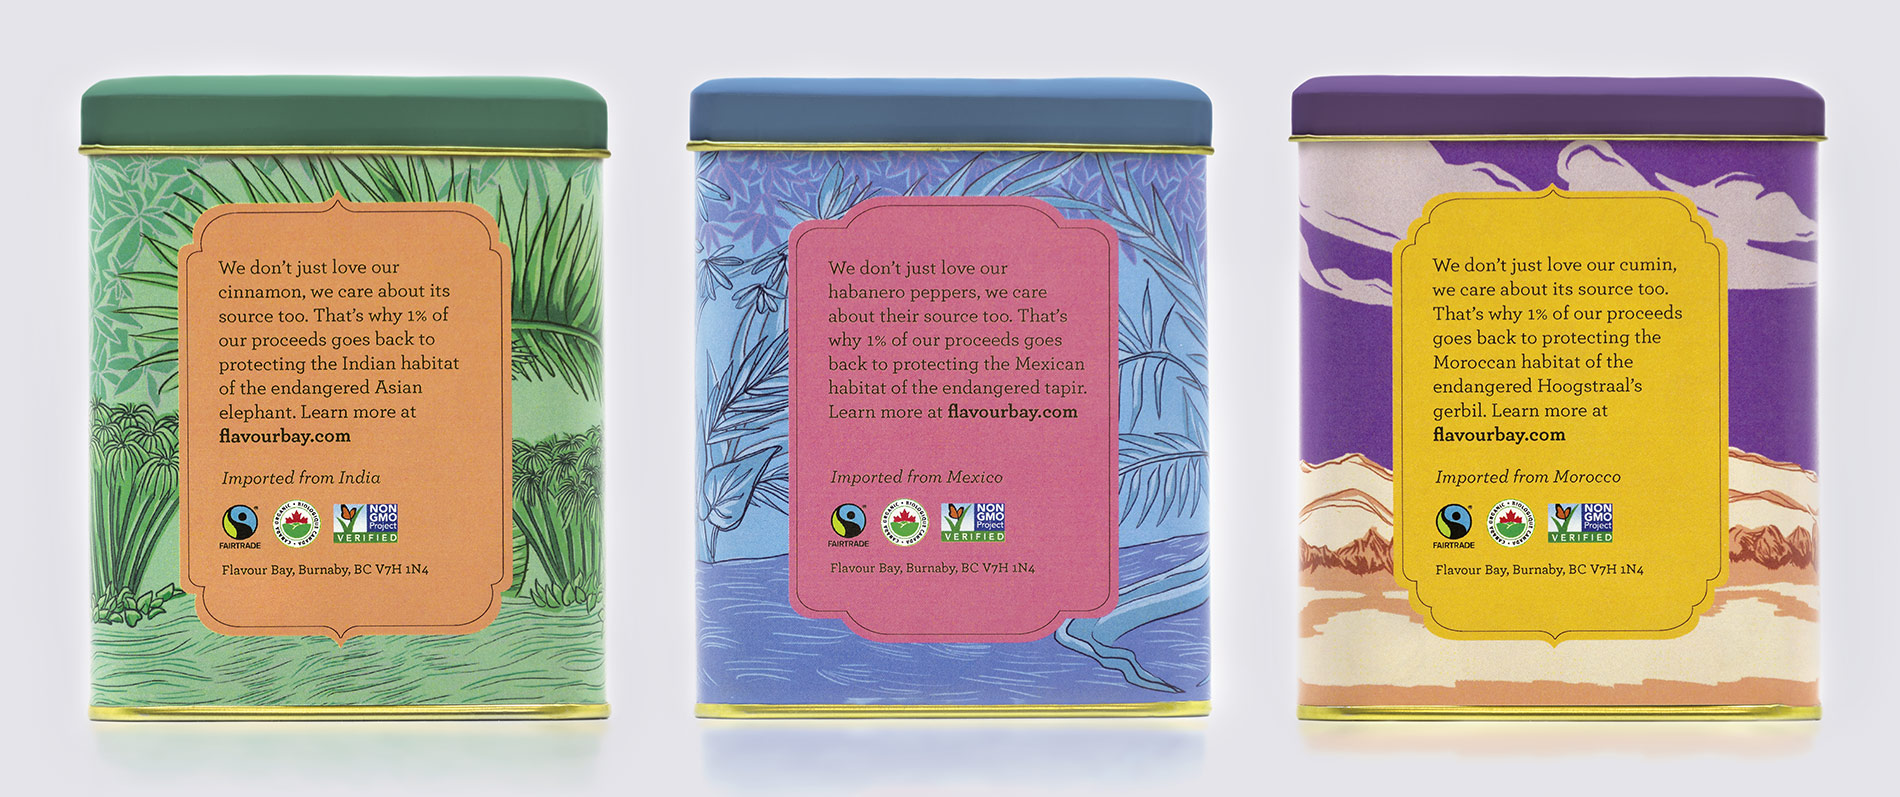 Flavour-Bay-Spice-Packaging-Cinammon-Illustration-and-Design-Back-Mockup-by-Fiona-Dunnett.jpg